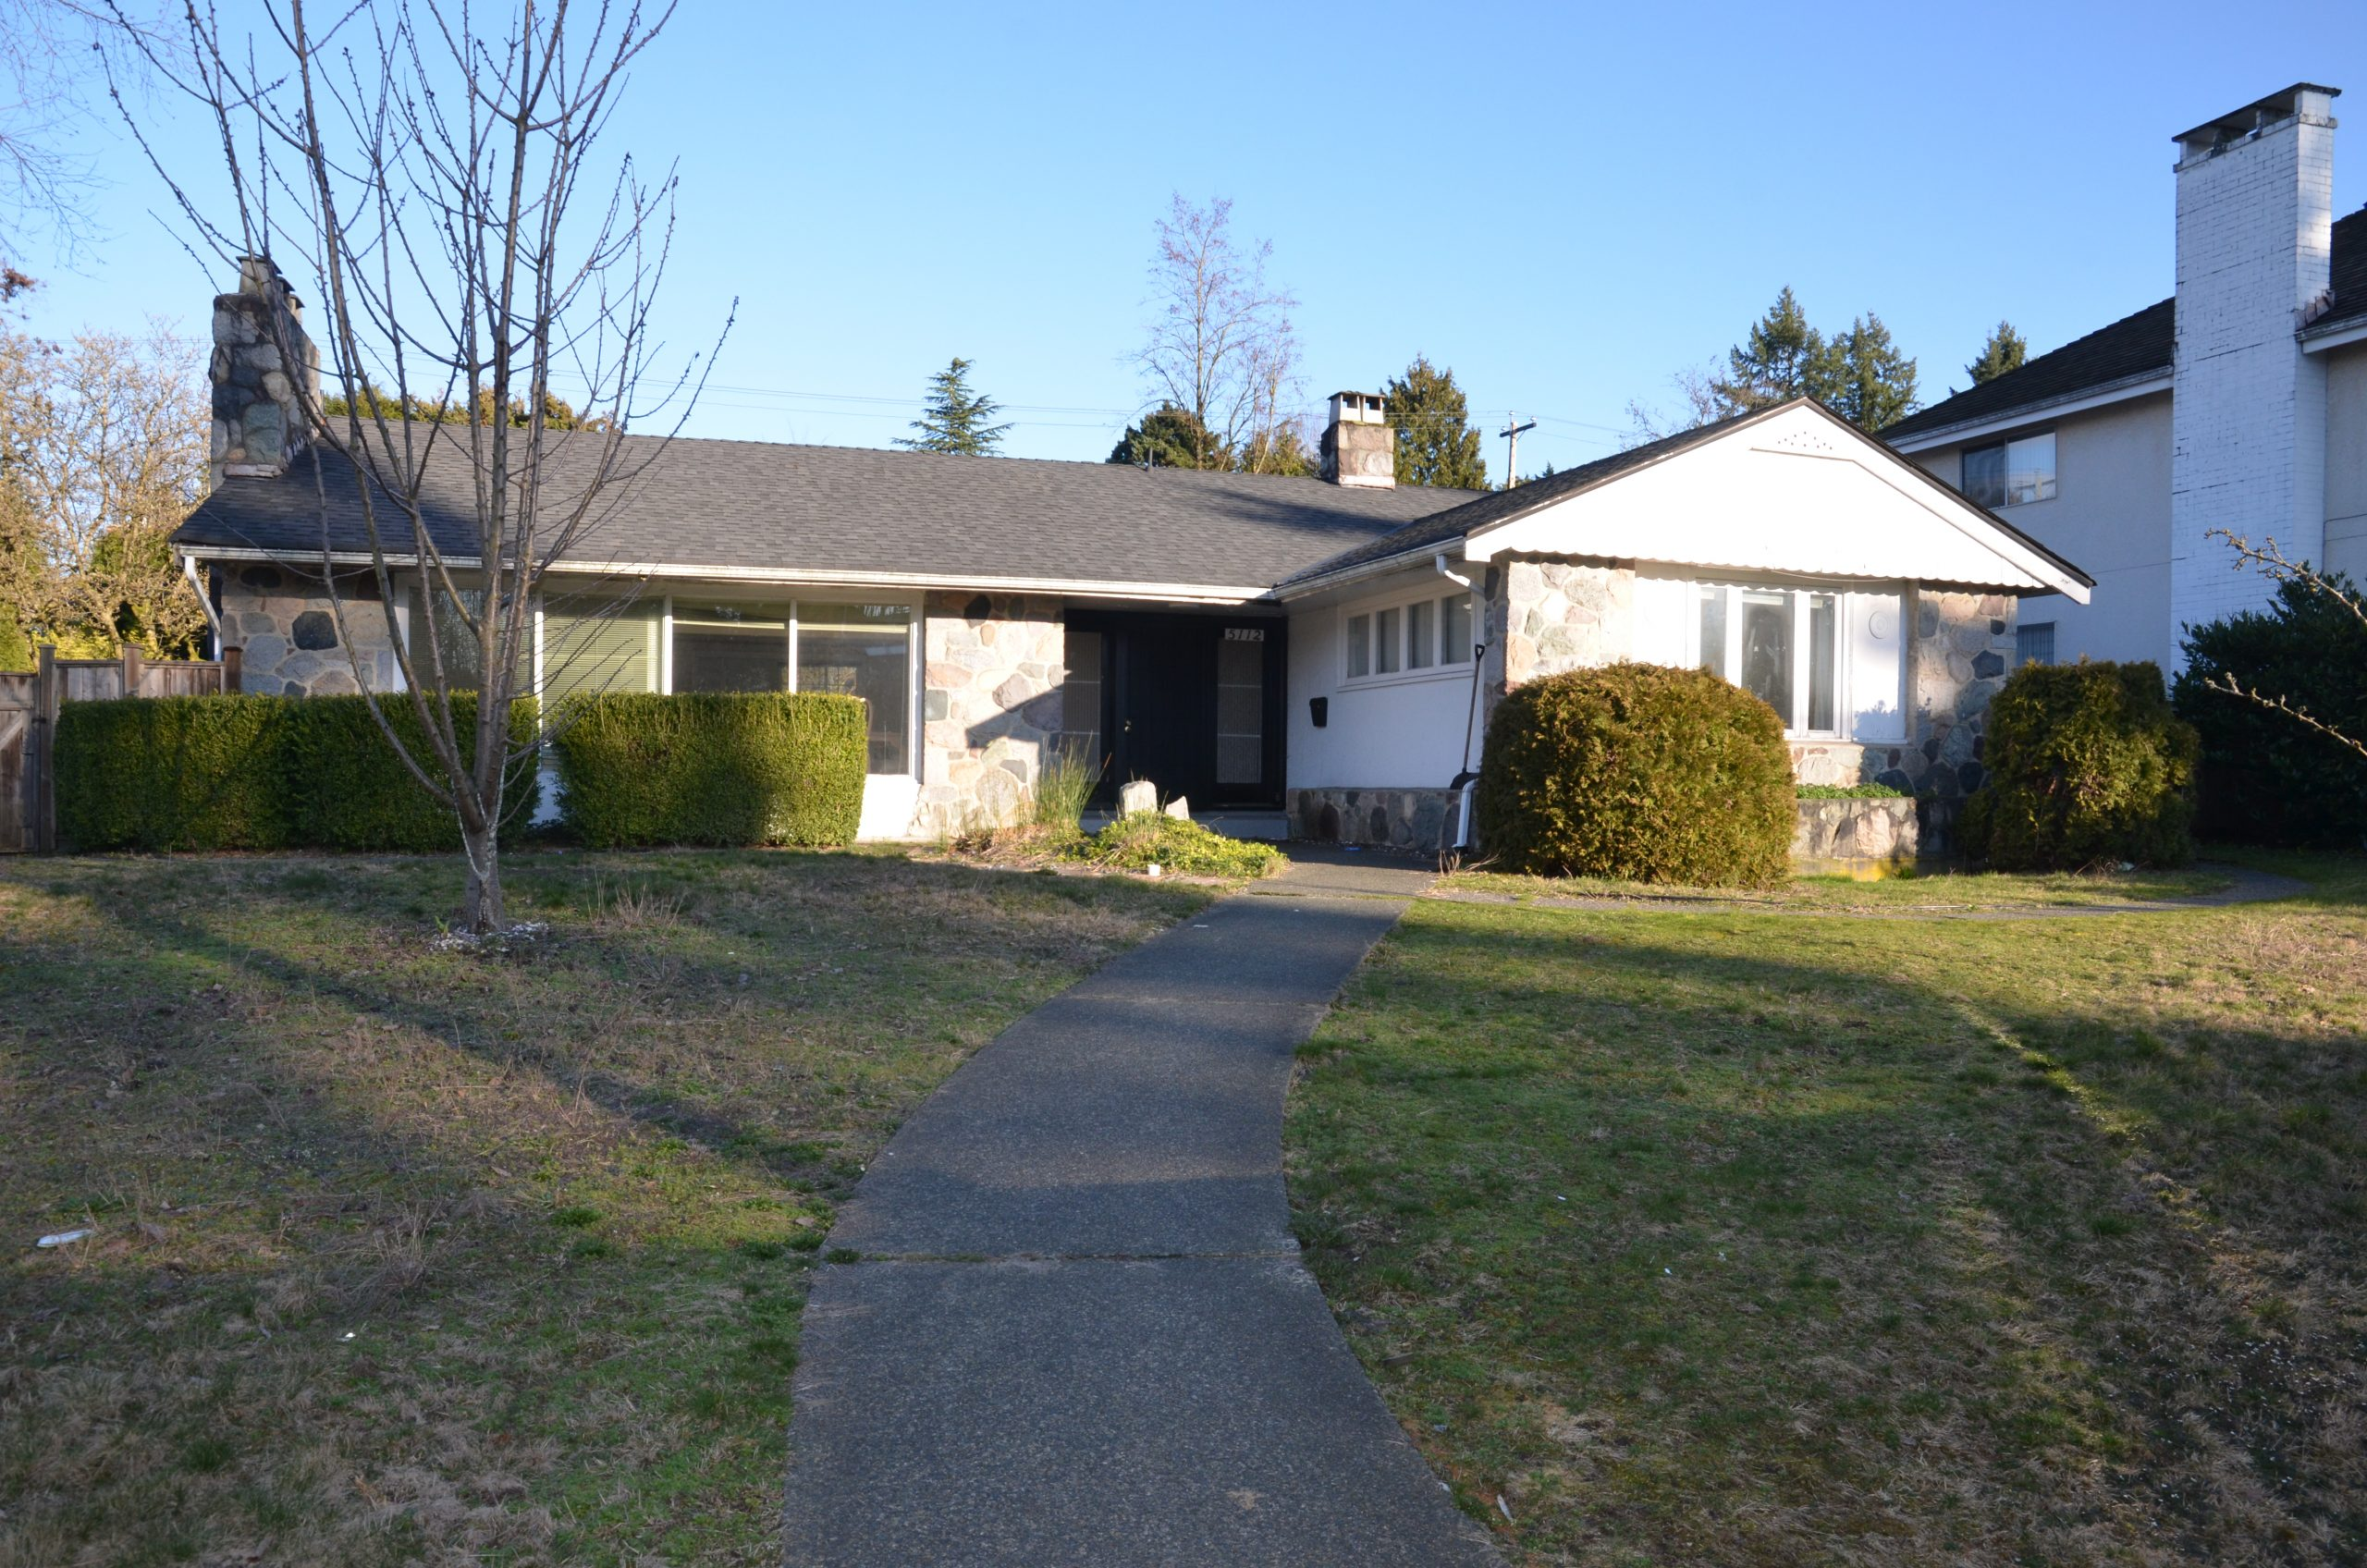 [LEASED] Vancouver West – Shaughnessy – 4 Beds – 2 Baths – 2000 sq ft – Ultra Luxury House